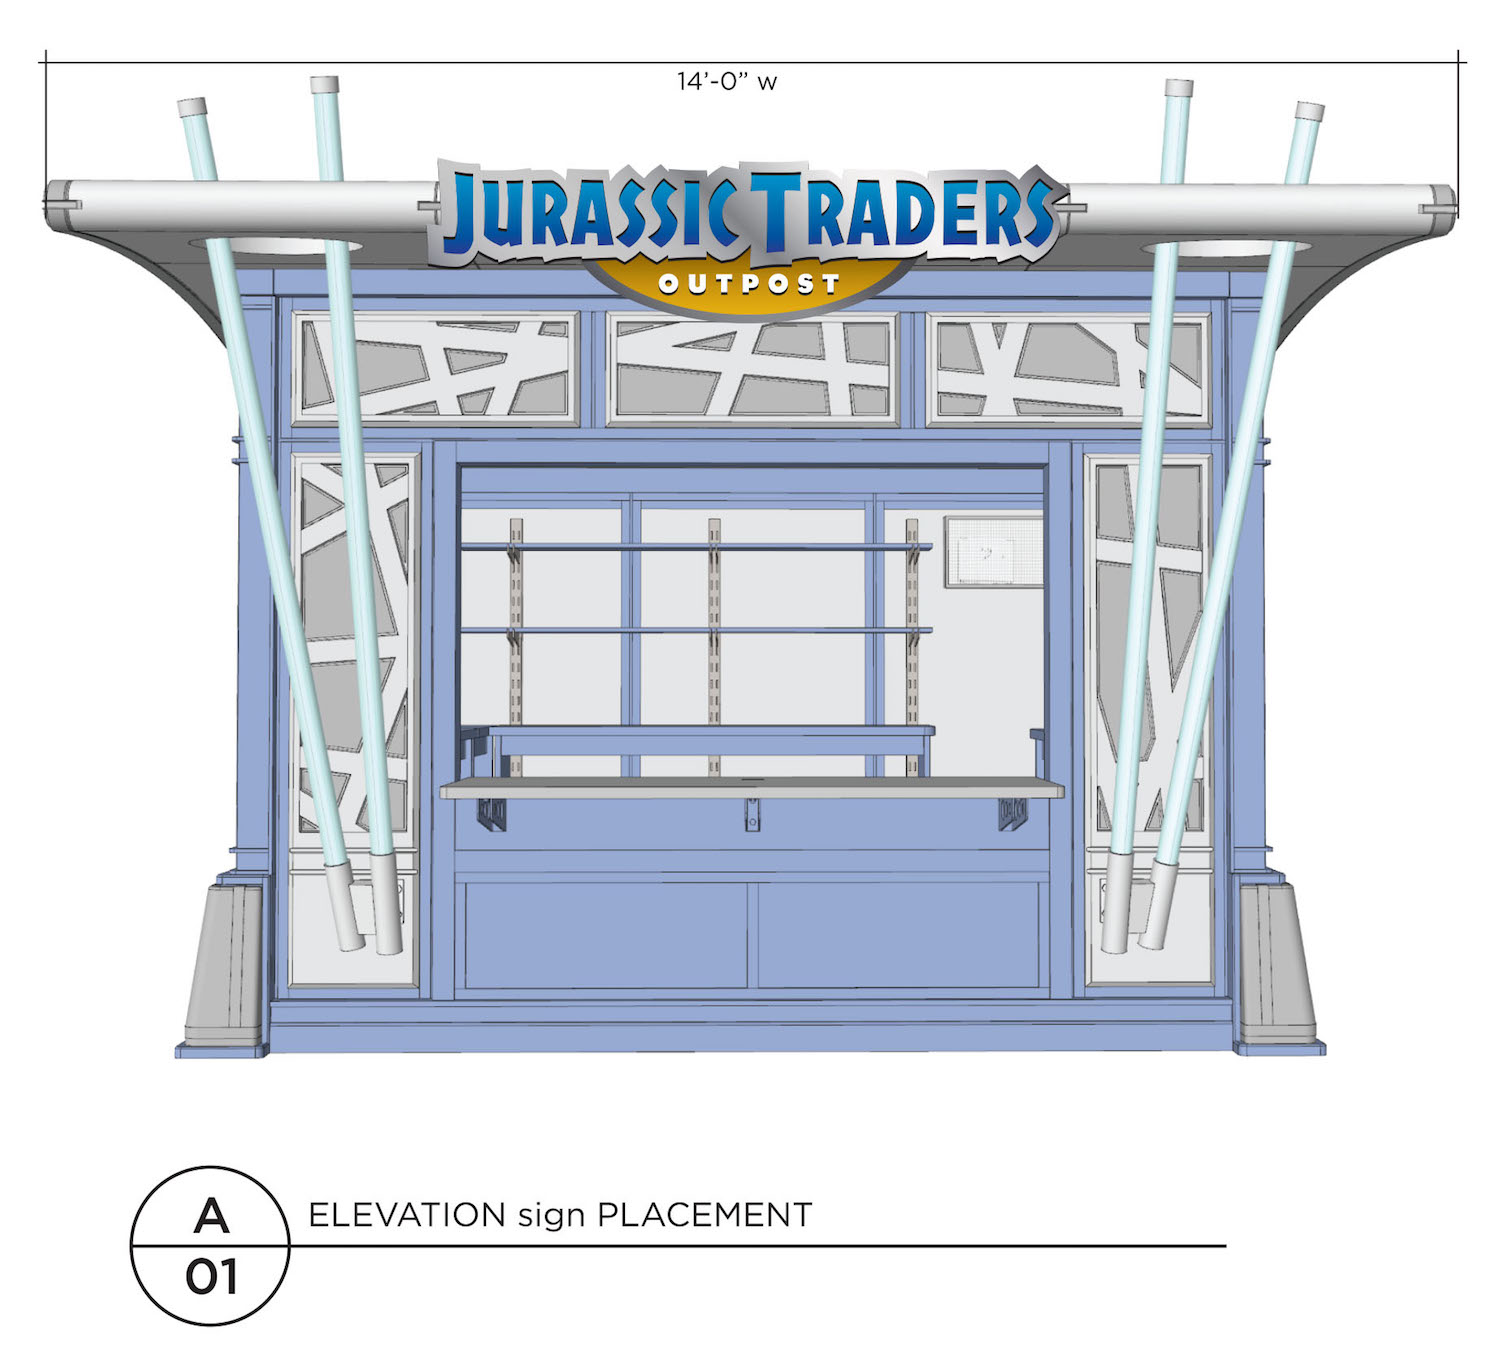 JWtraders sign layout.jpg